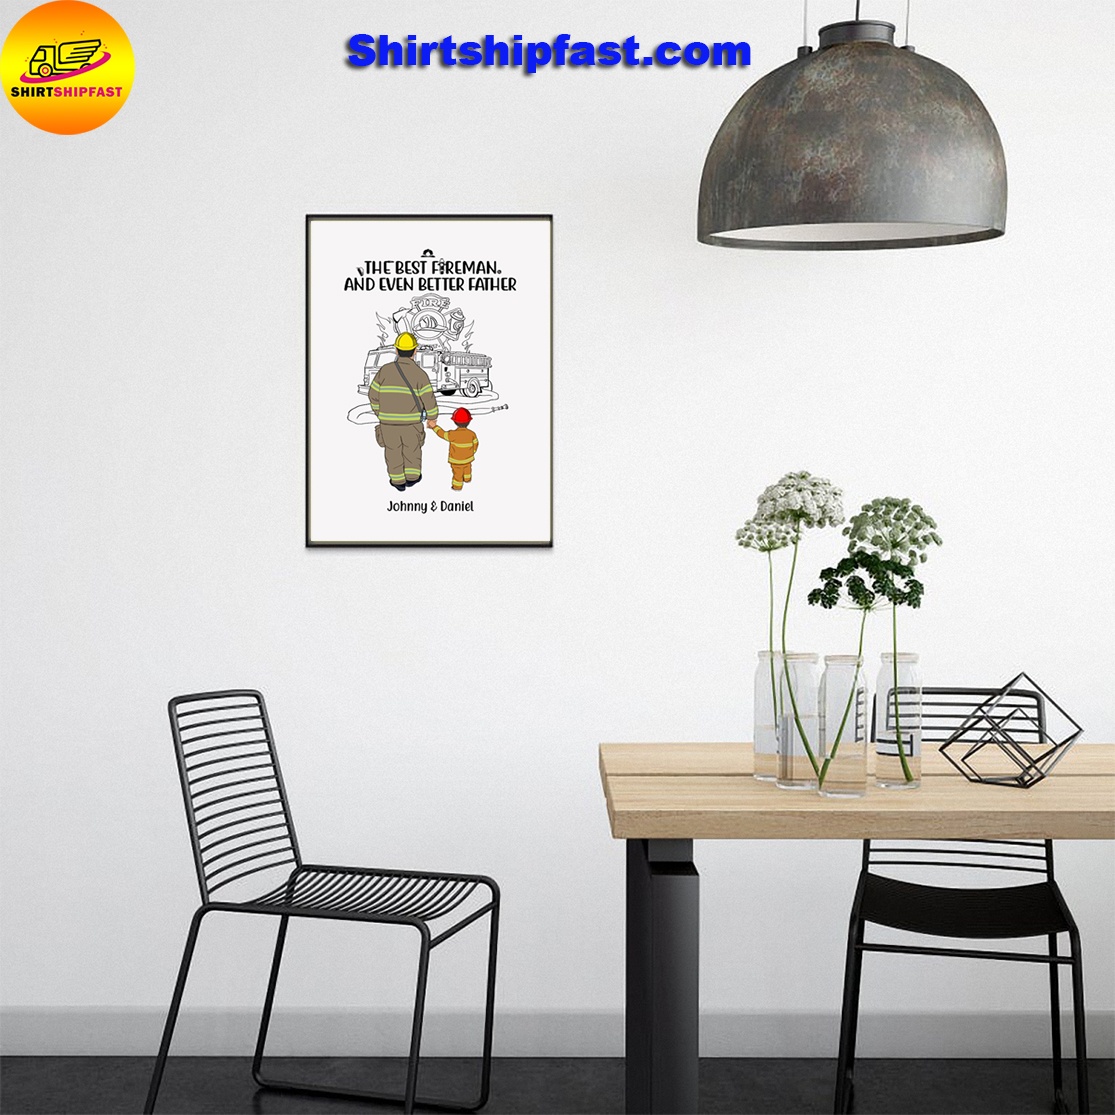 Firefighter The best fireman and even better father personalized custom name poster - Picture 3